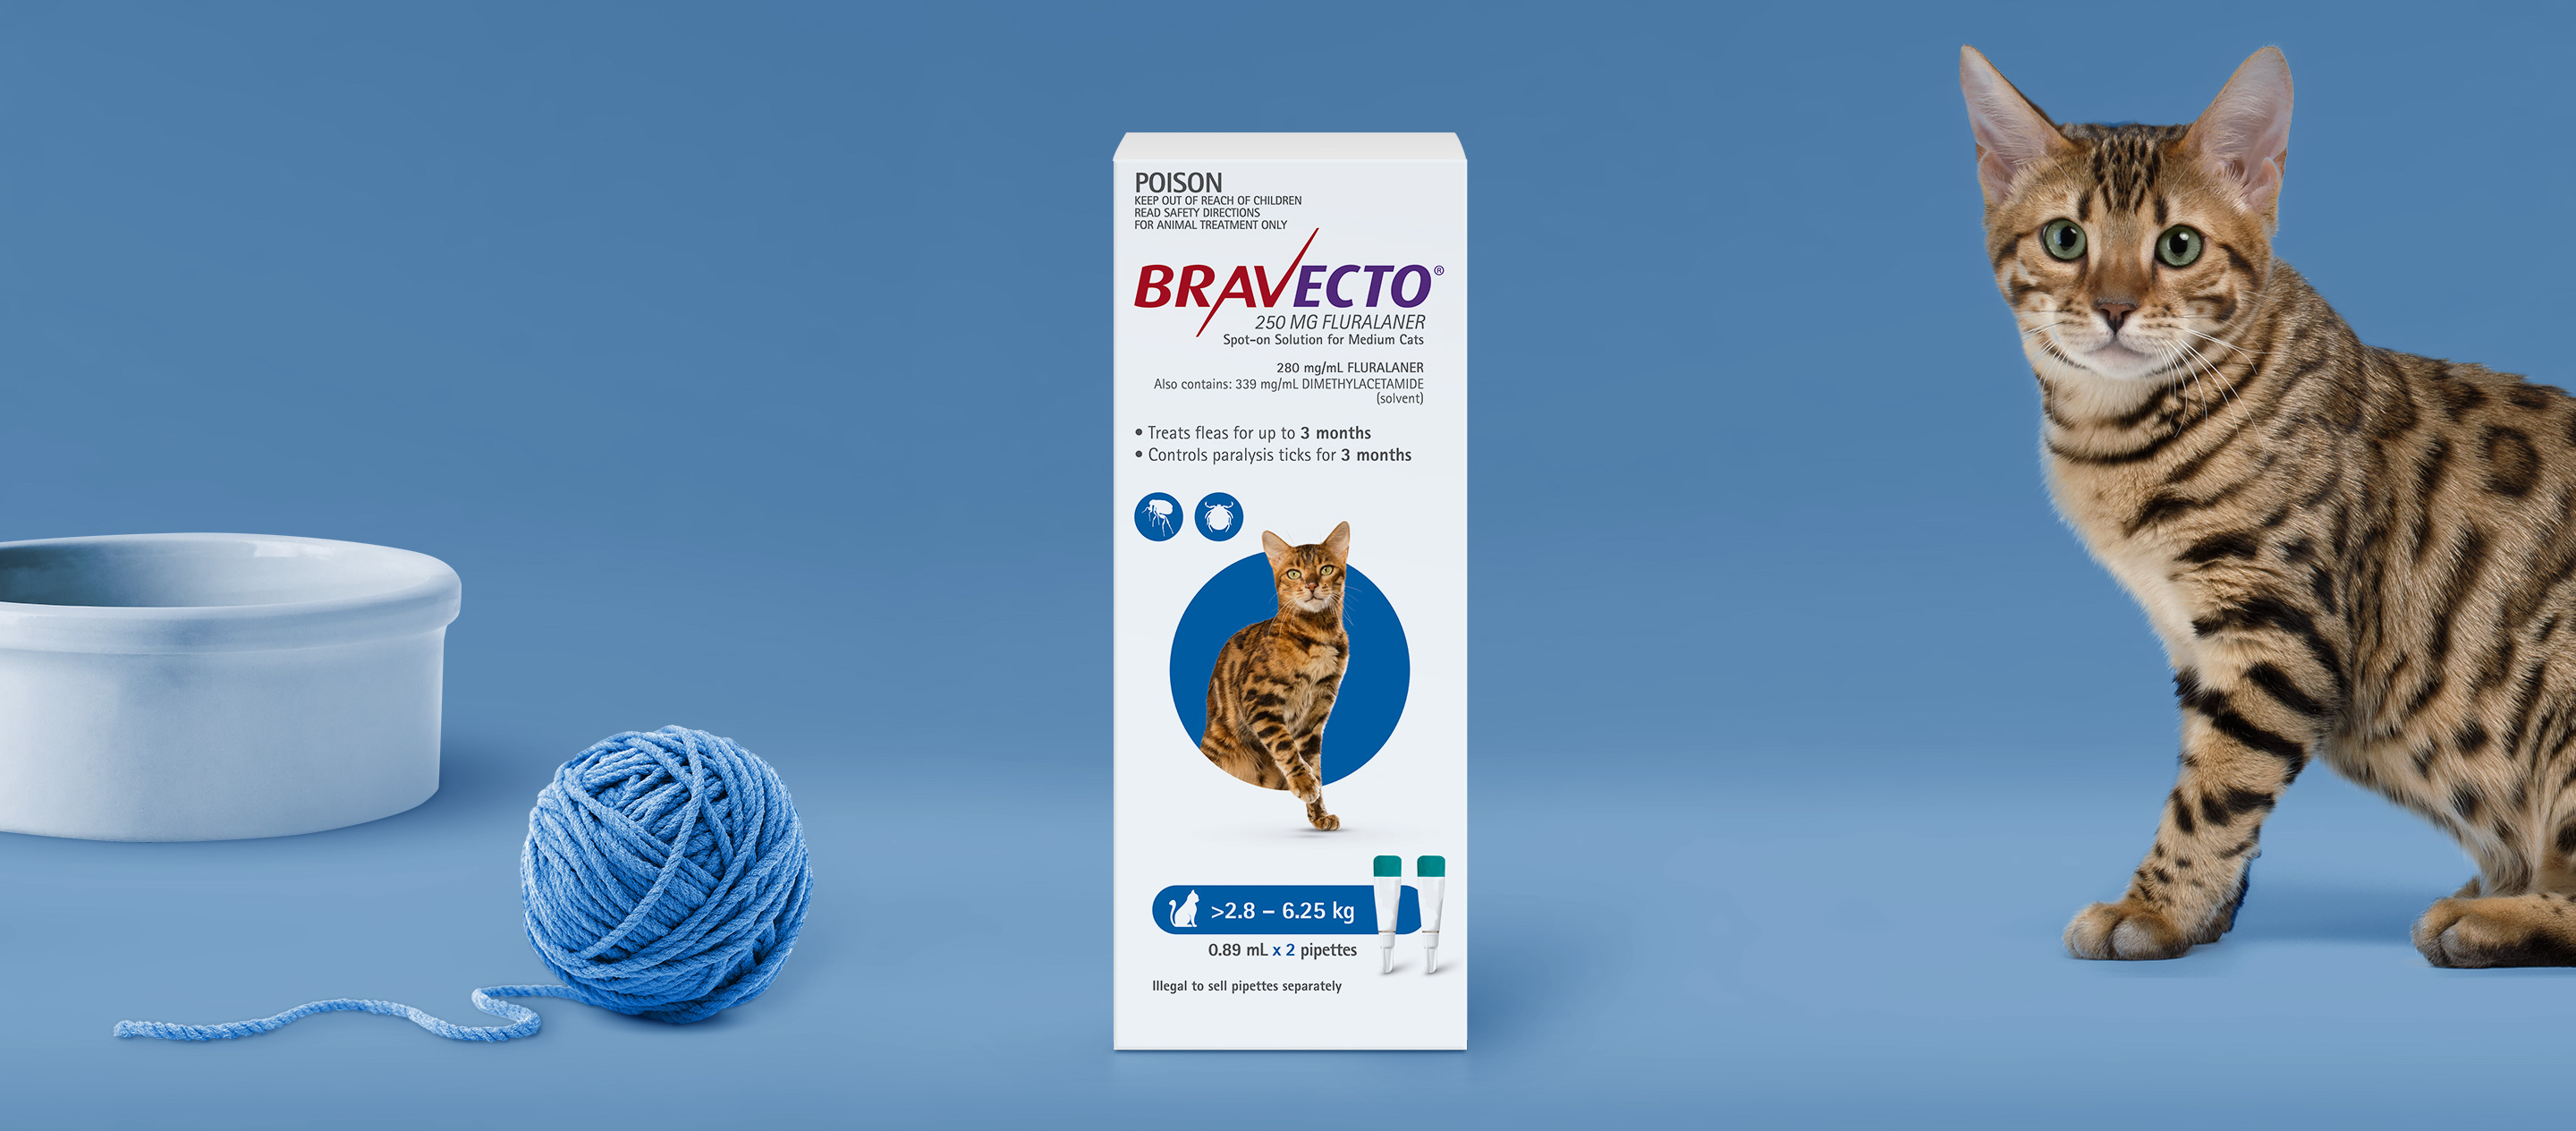 Bravecto Spot On For Cats 2.8 - 6.25 kg